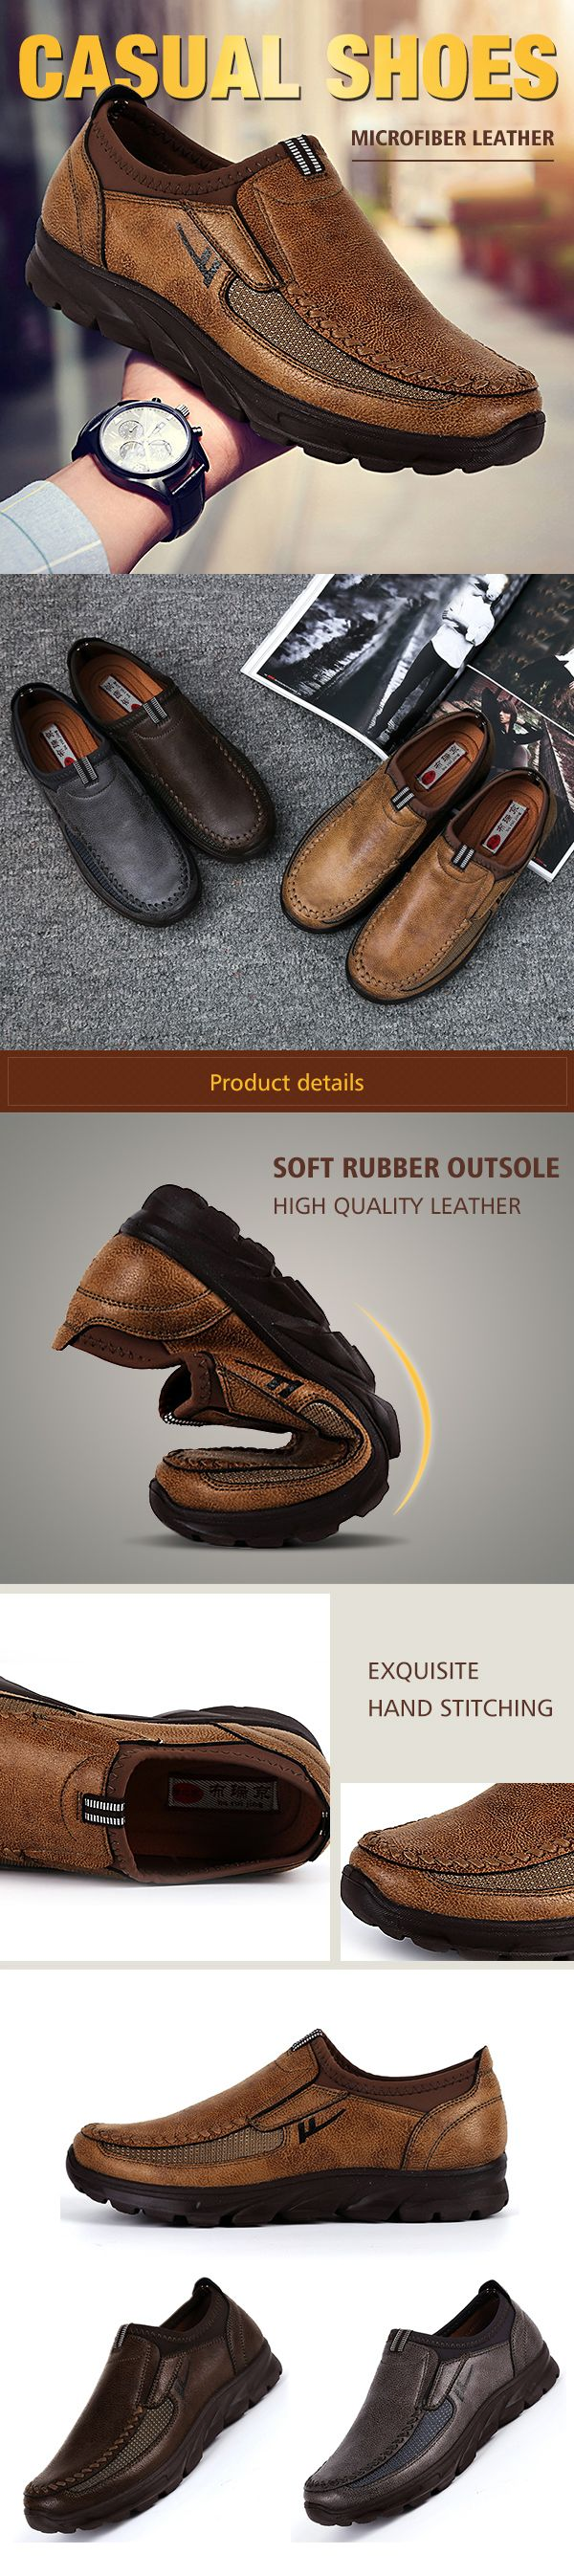 US$31.53 Men Large Size Hand Stitching Microfiber Leather Non-slip Casual Shoes#winter#leather shoes